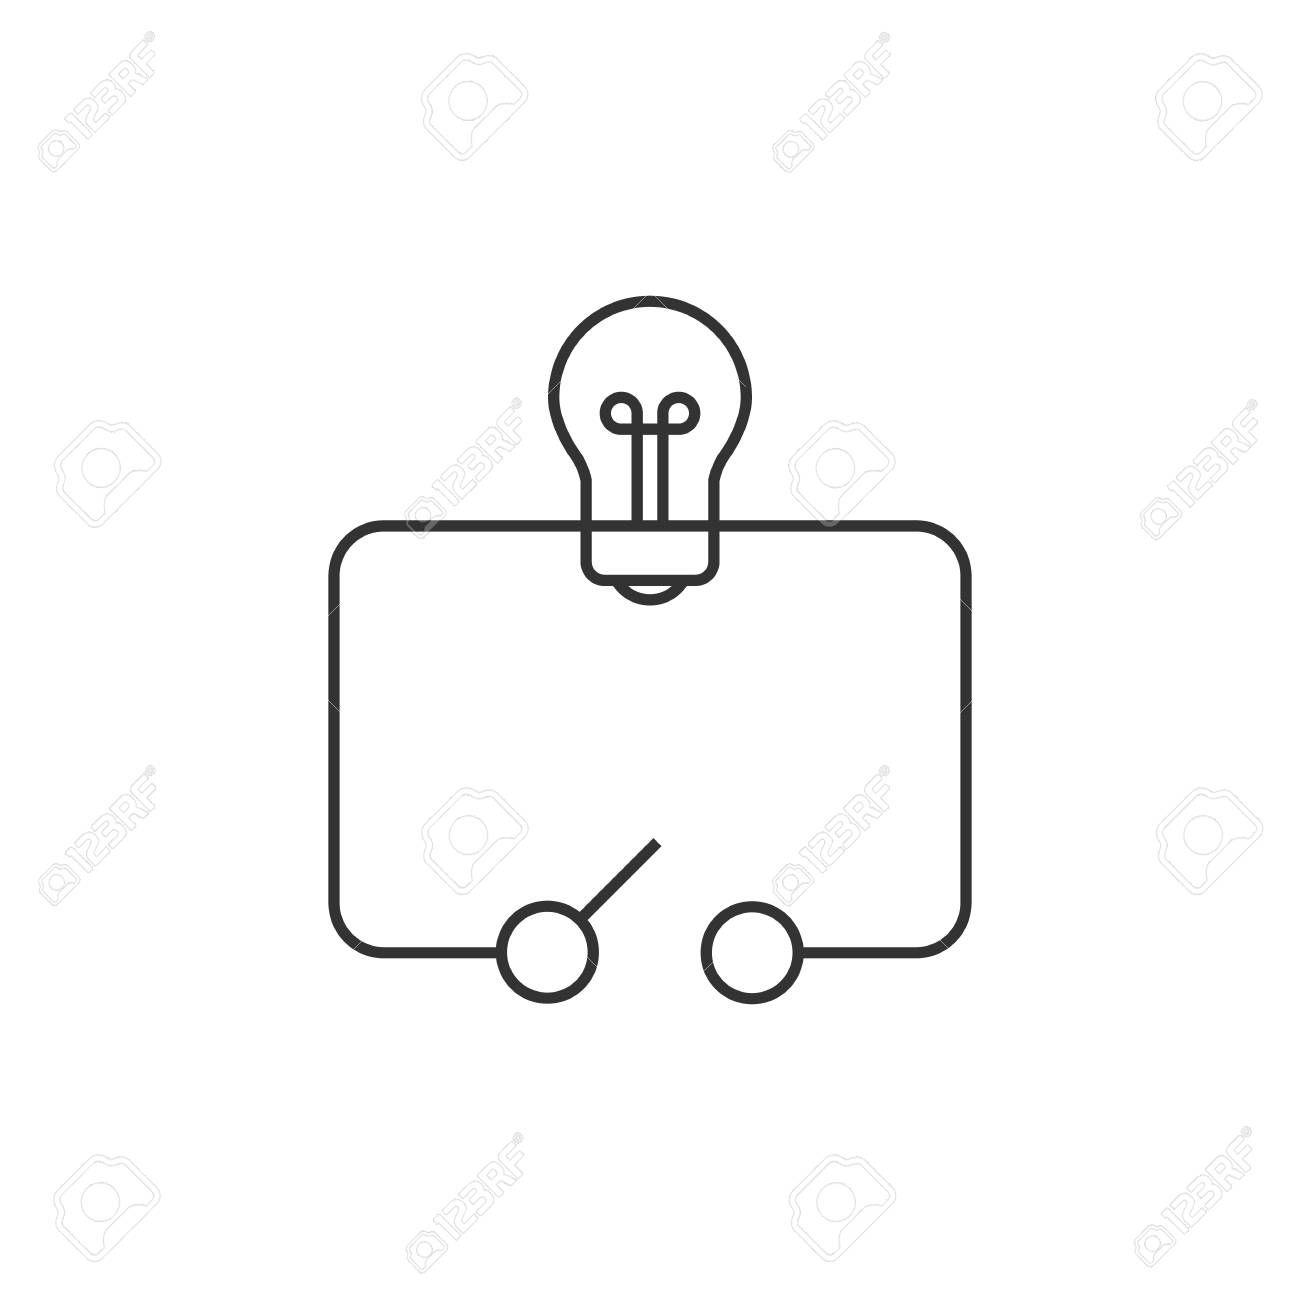 Electric Switch Diagram Icon In Thin Outline Style Royalty Free Symbol Stock Vector 72773027